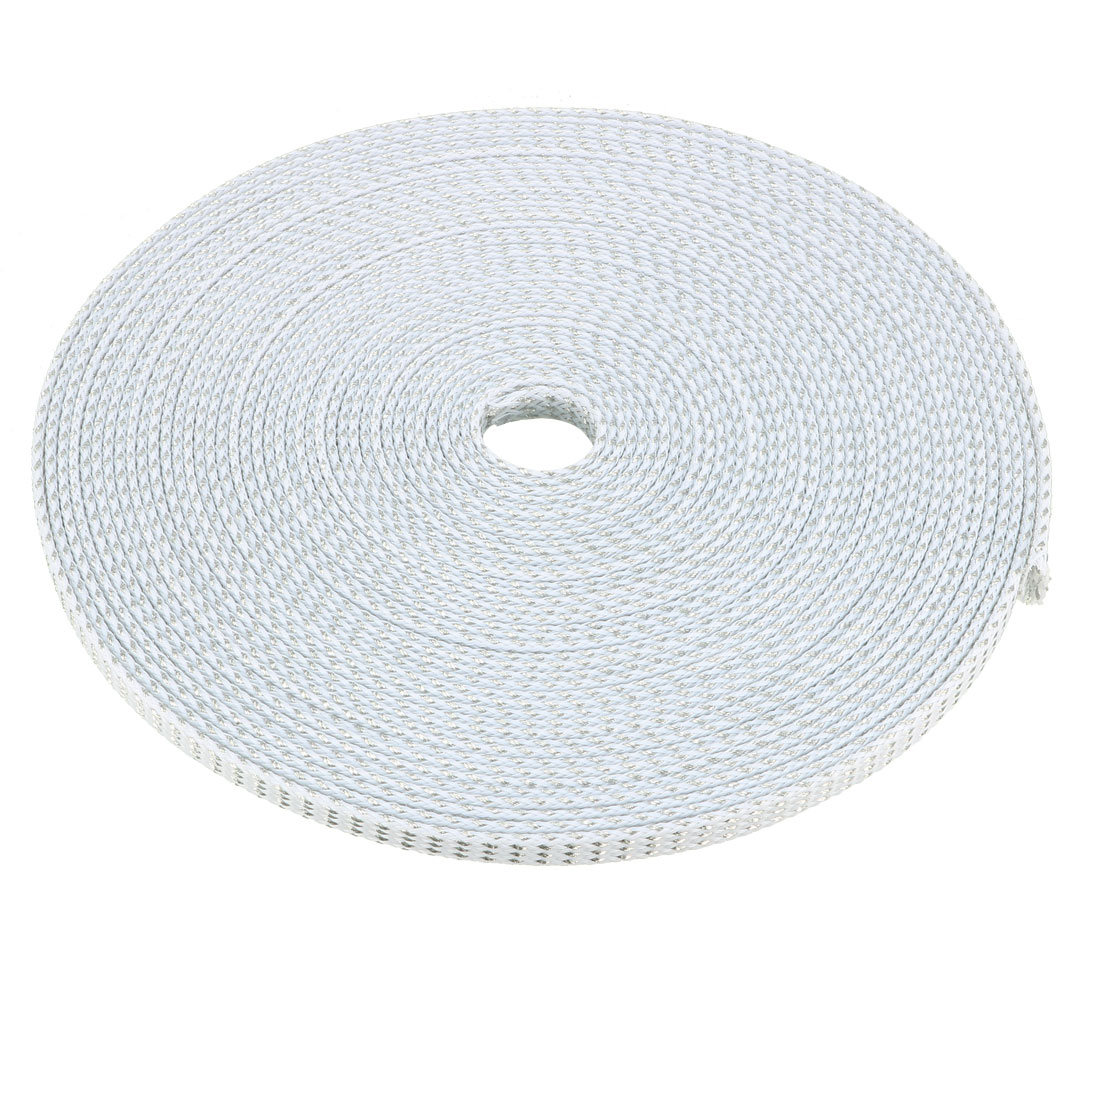 6mm Dia Tight Braided PET Expandable Sleeving Cable Wrap Sheath Silver White 32Ft